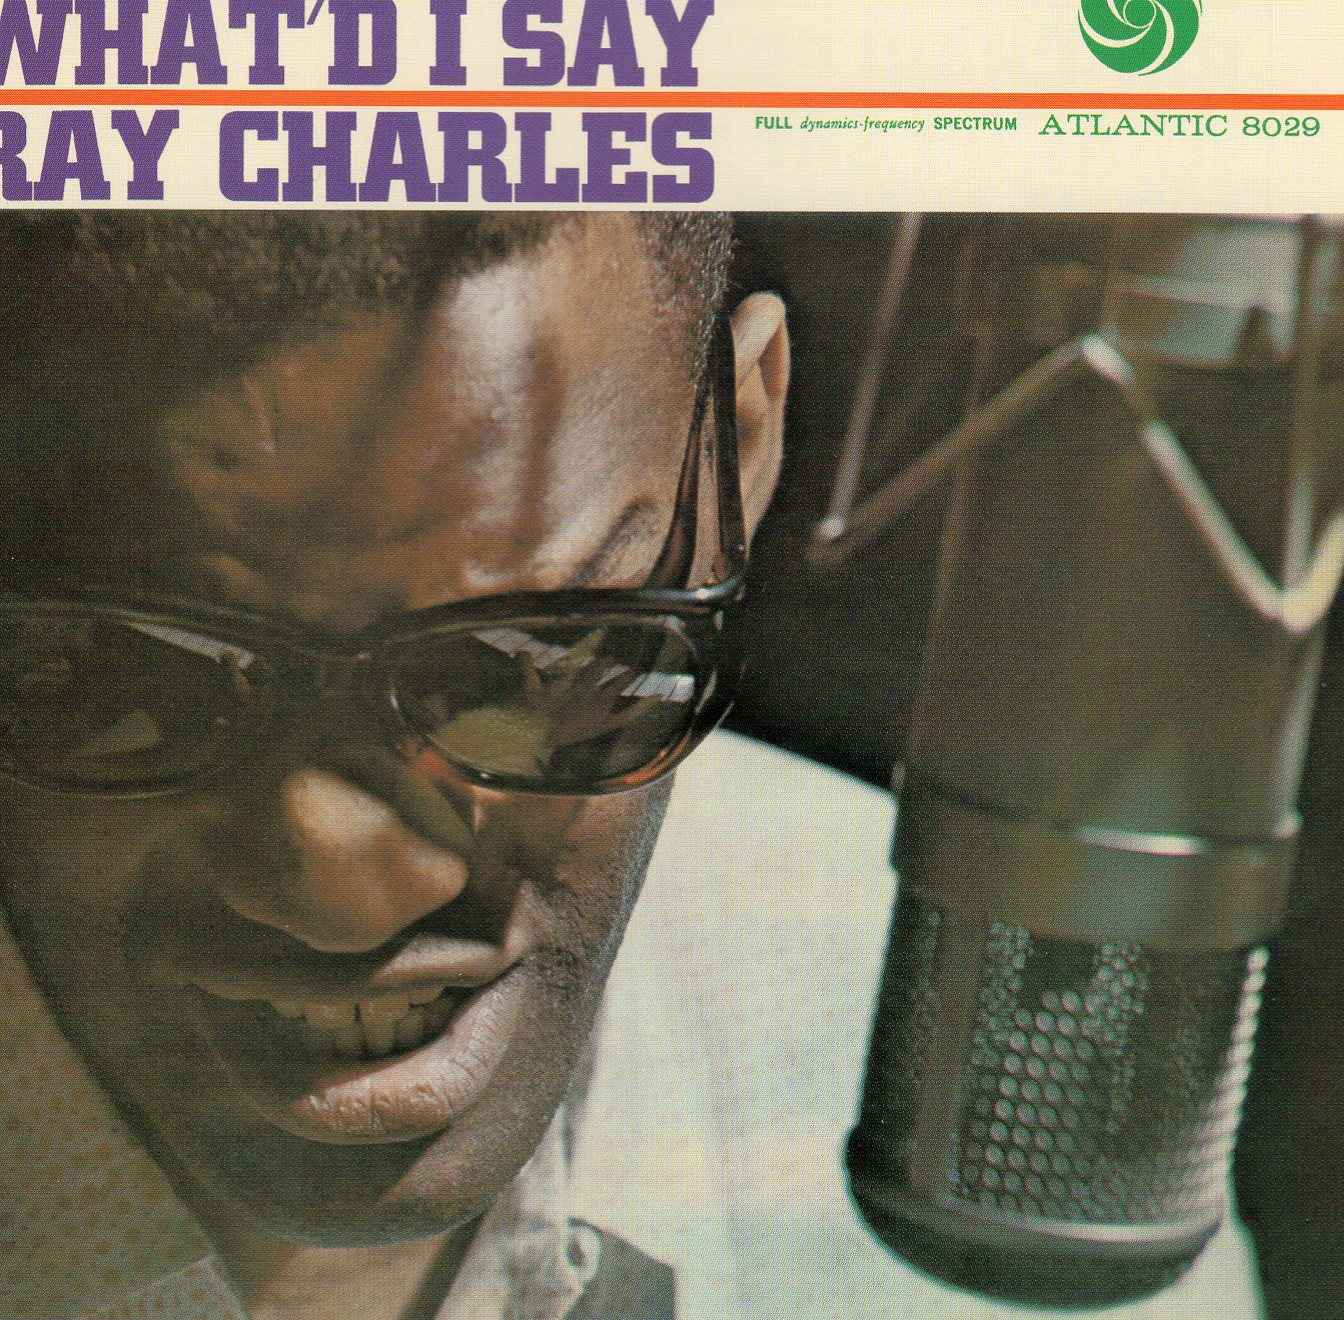 """What'd I say"" Ray Charles"